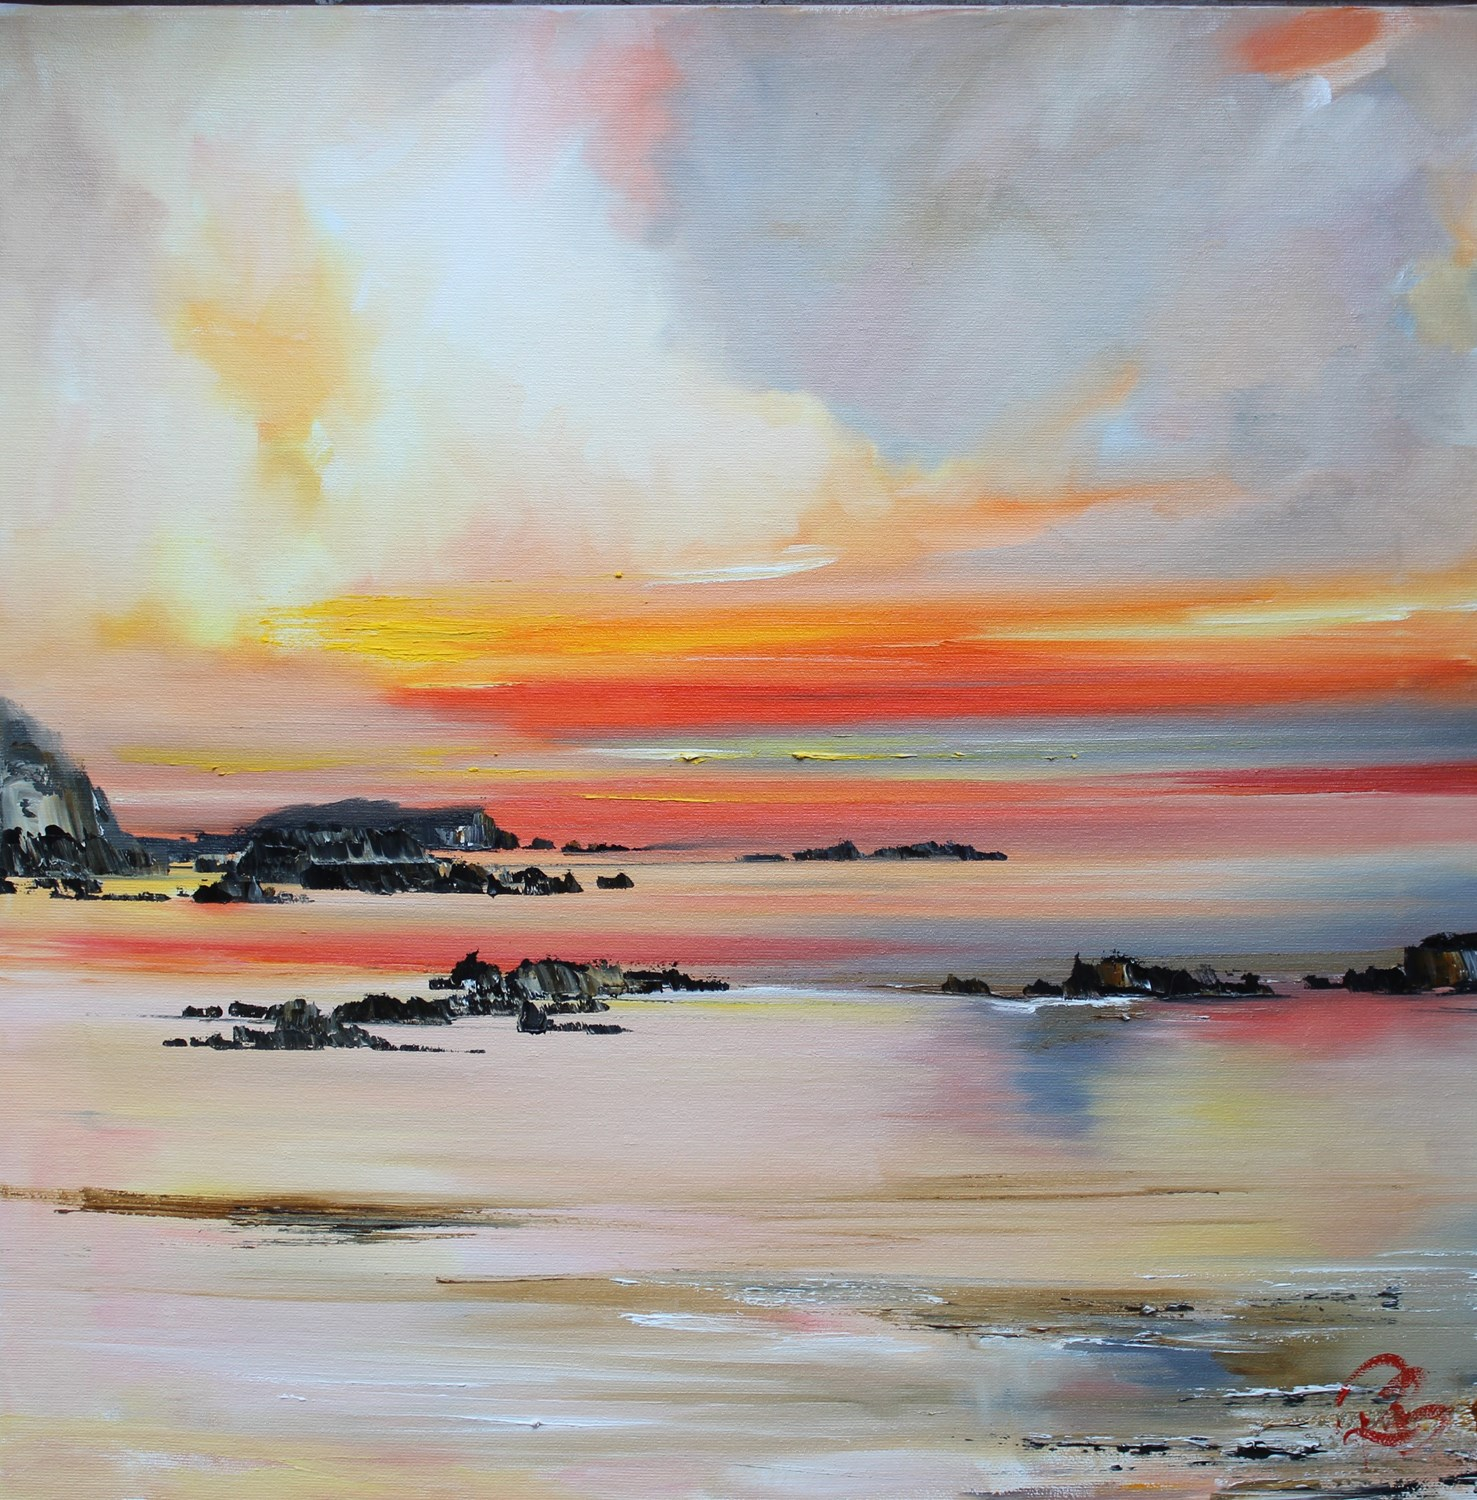 'Clouds lit by sunset' by artist Rosanne Barr